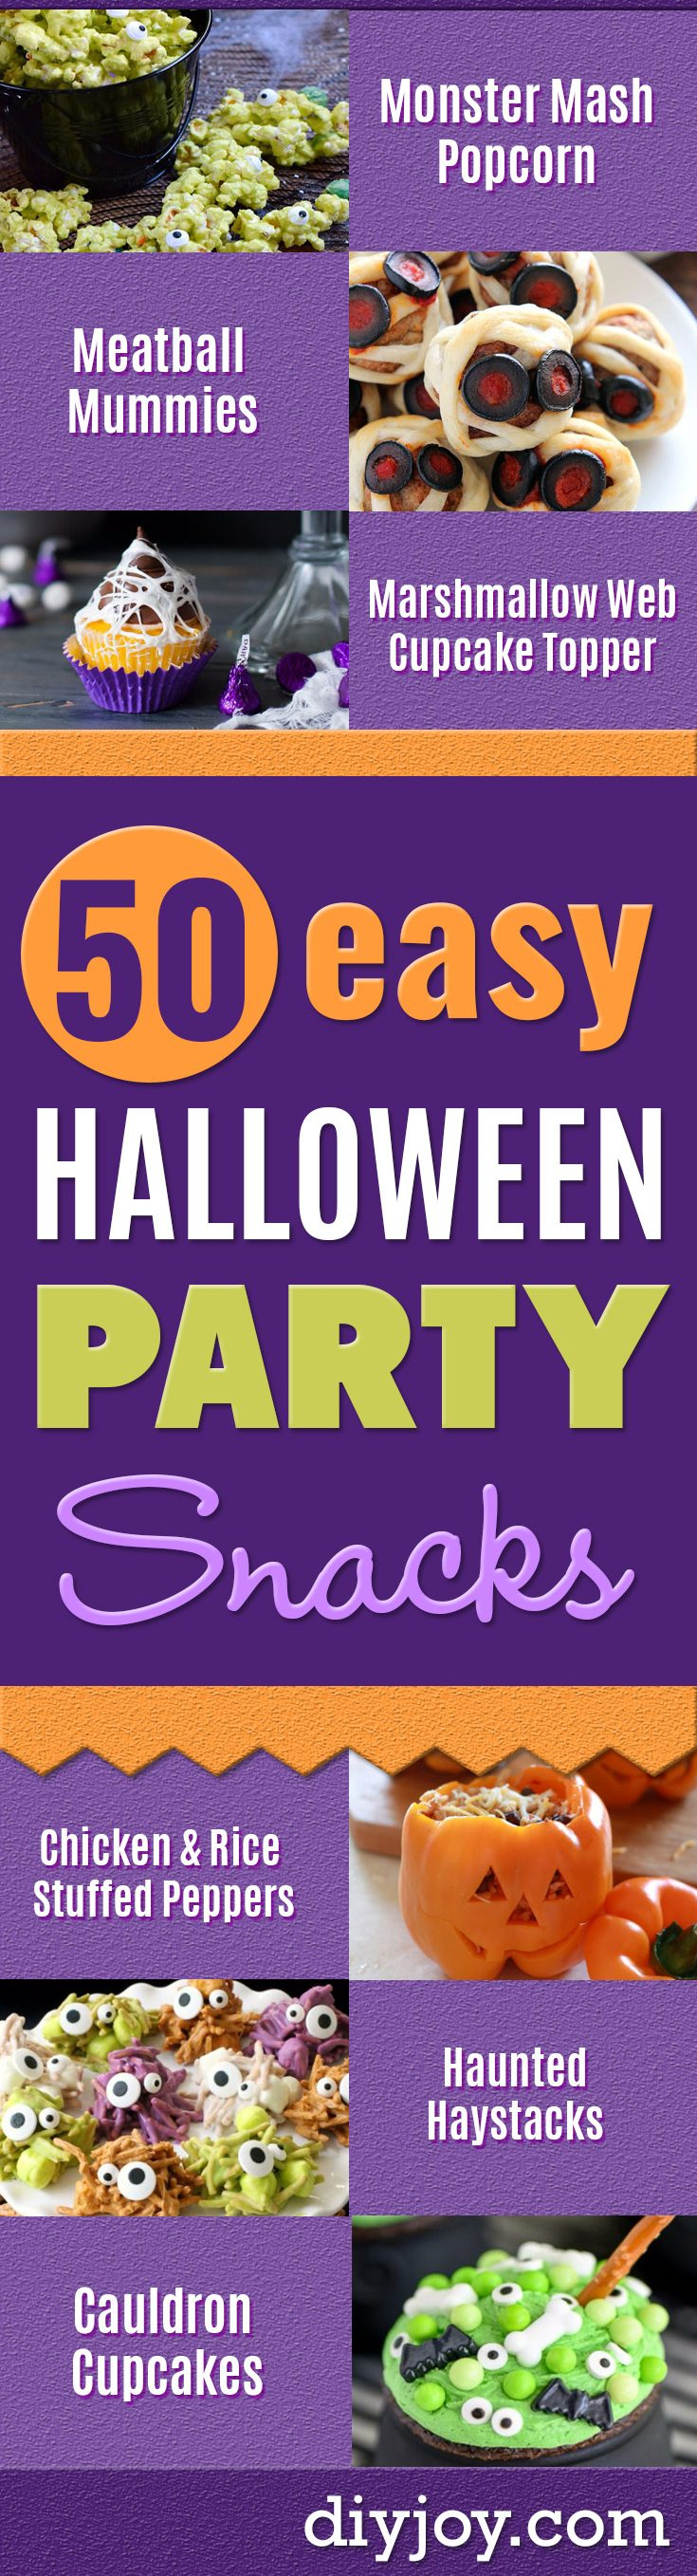 Halloween Party Snacks - Healthy Recipe Ideas for Halloween - Creative Idea for Kids for School, Teens and Adults - Easy and Quick Recipes and Idea for Dips, Chips, Spooky Cookies and Treats - Appetizers and Finger Foods Made With Vegetables, No Candy, Cheap Food, Scary Desserts and DIY Party Foods With Step by Step Tutorials